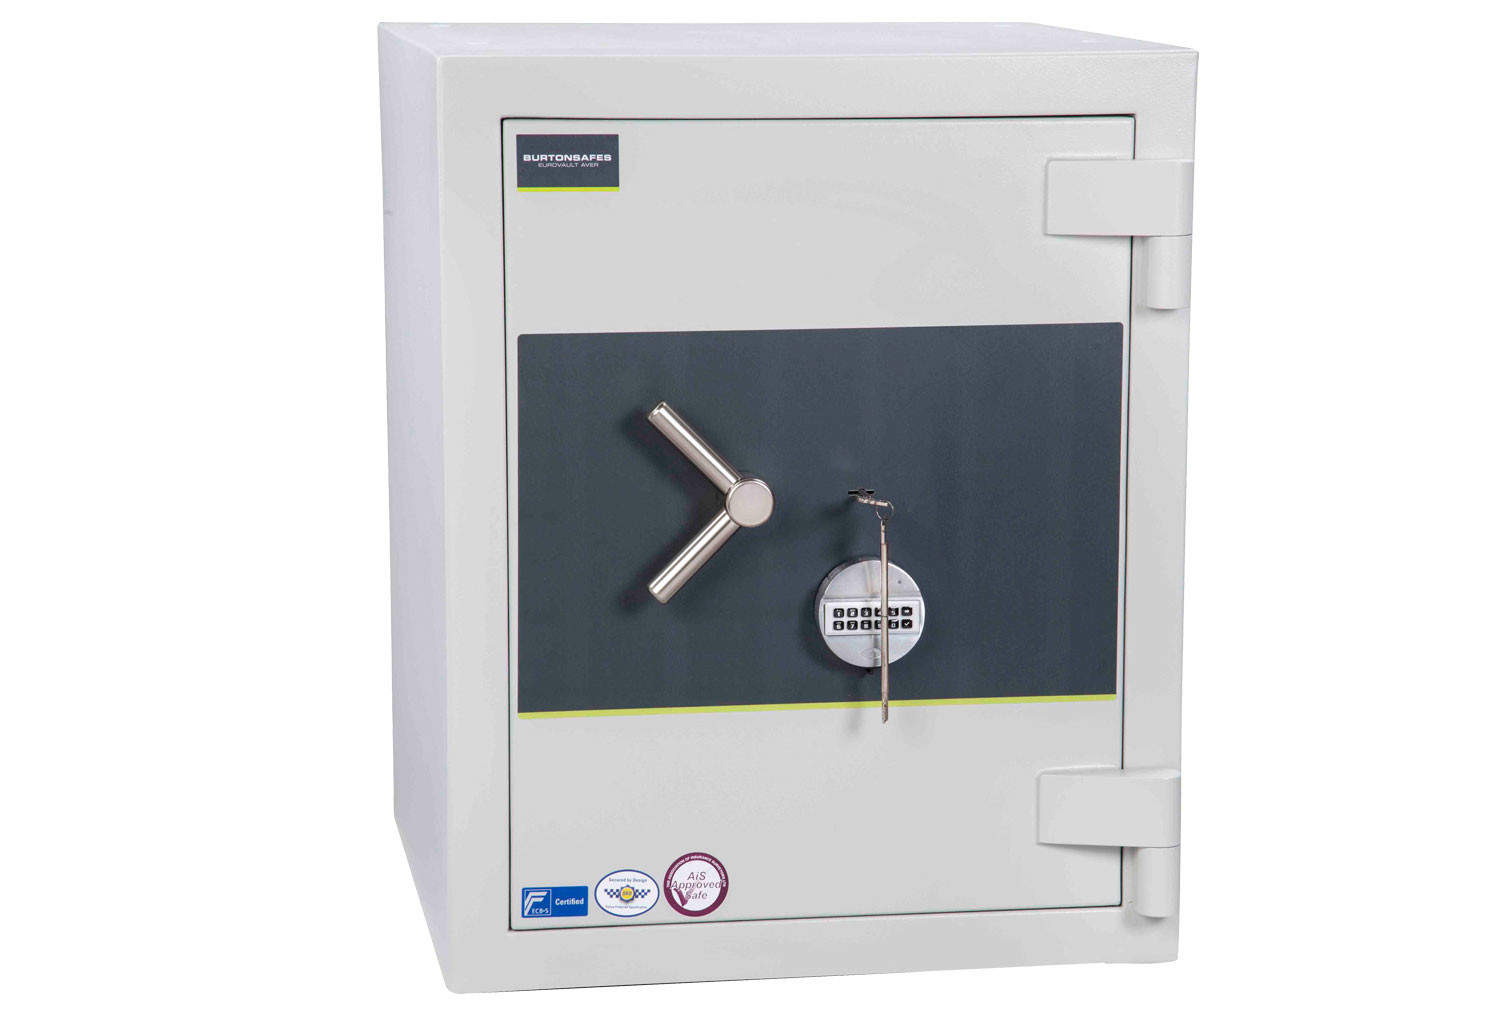 Burton Eurovault Aver Grade 5 Size 2 Safe With Dual Key And Electronic Lock (163ltrs)